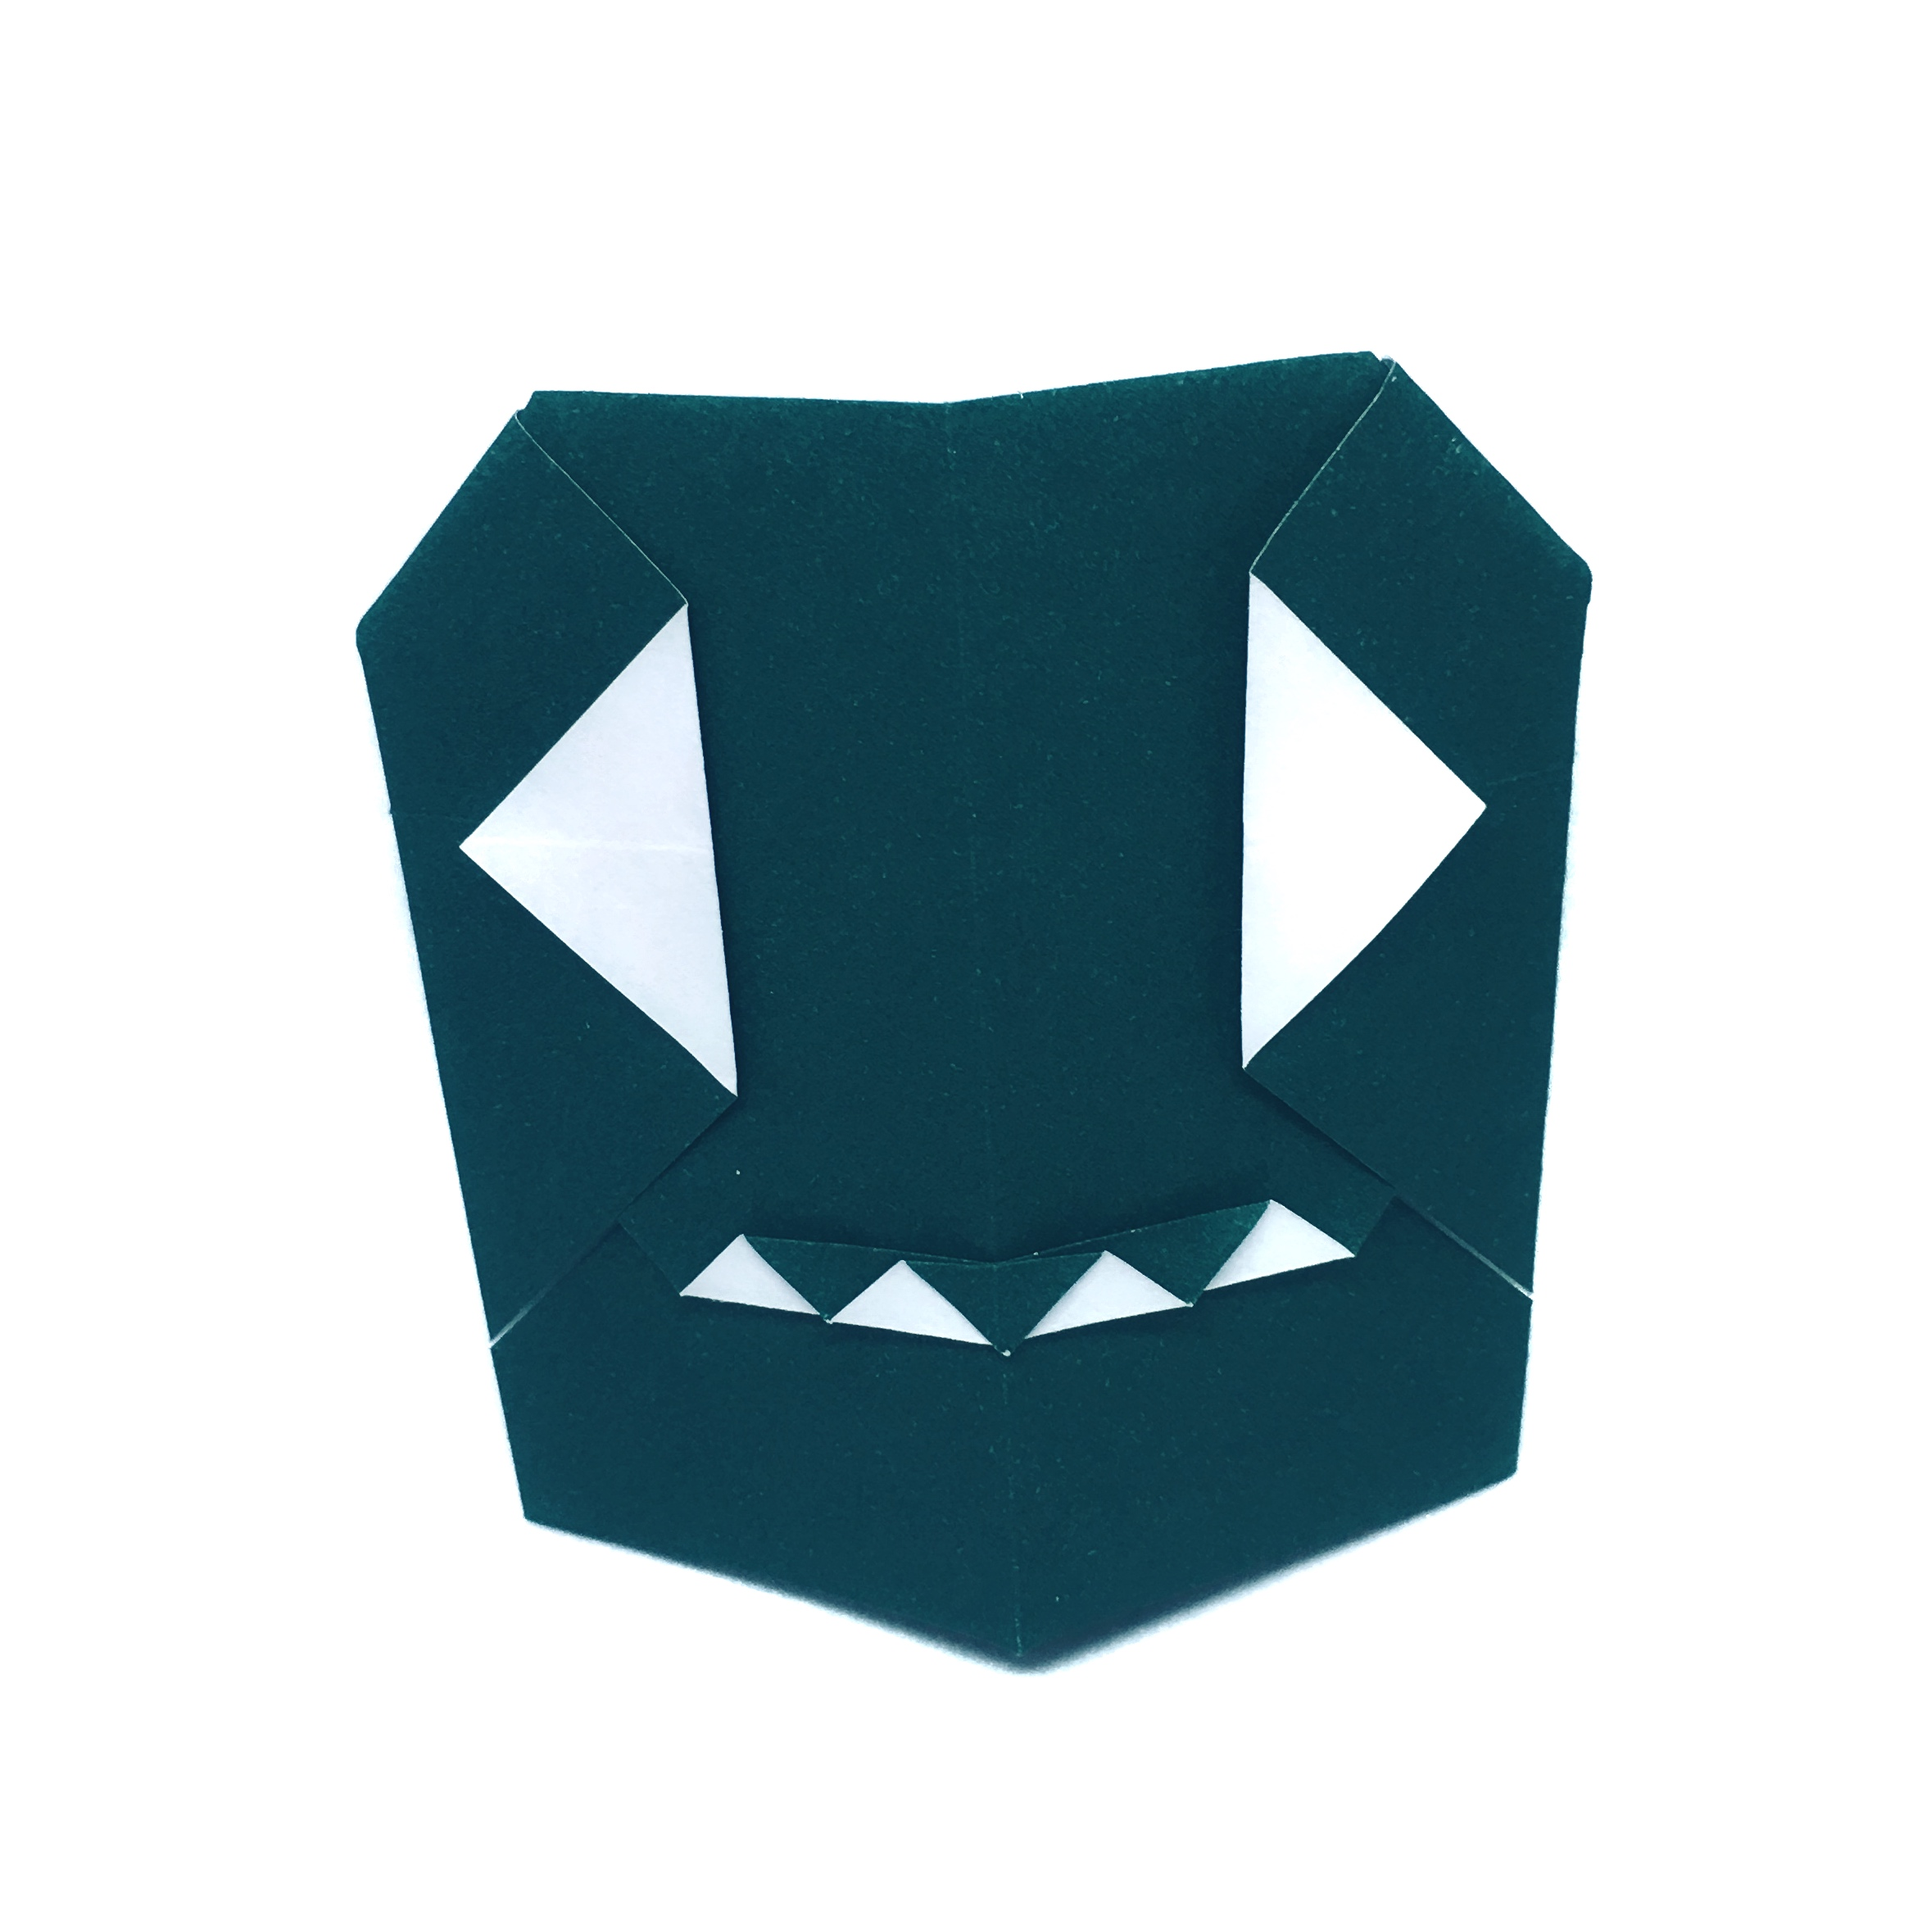 Mr origami ghost by stephane gigandet origami for halloween mr origami ghost by stephane gigandet origami for halloween origamiexpressions jeuxipadfo Choice Image